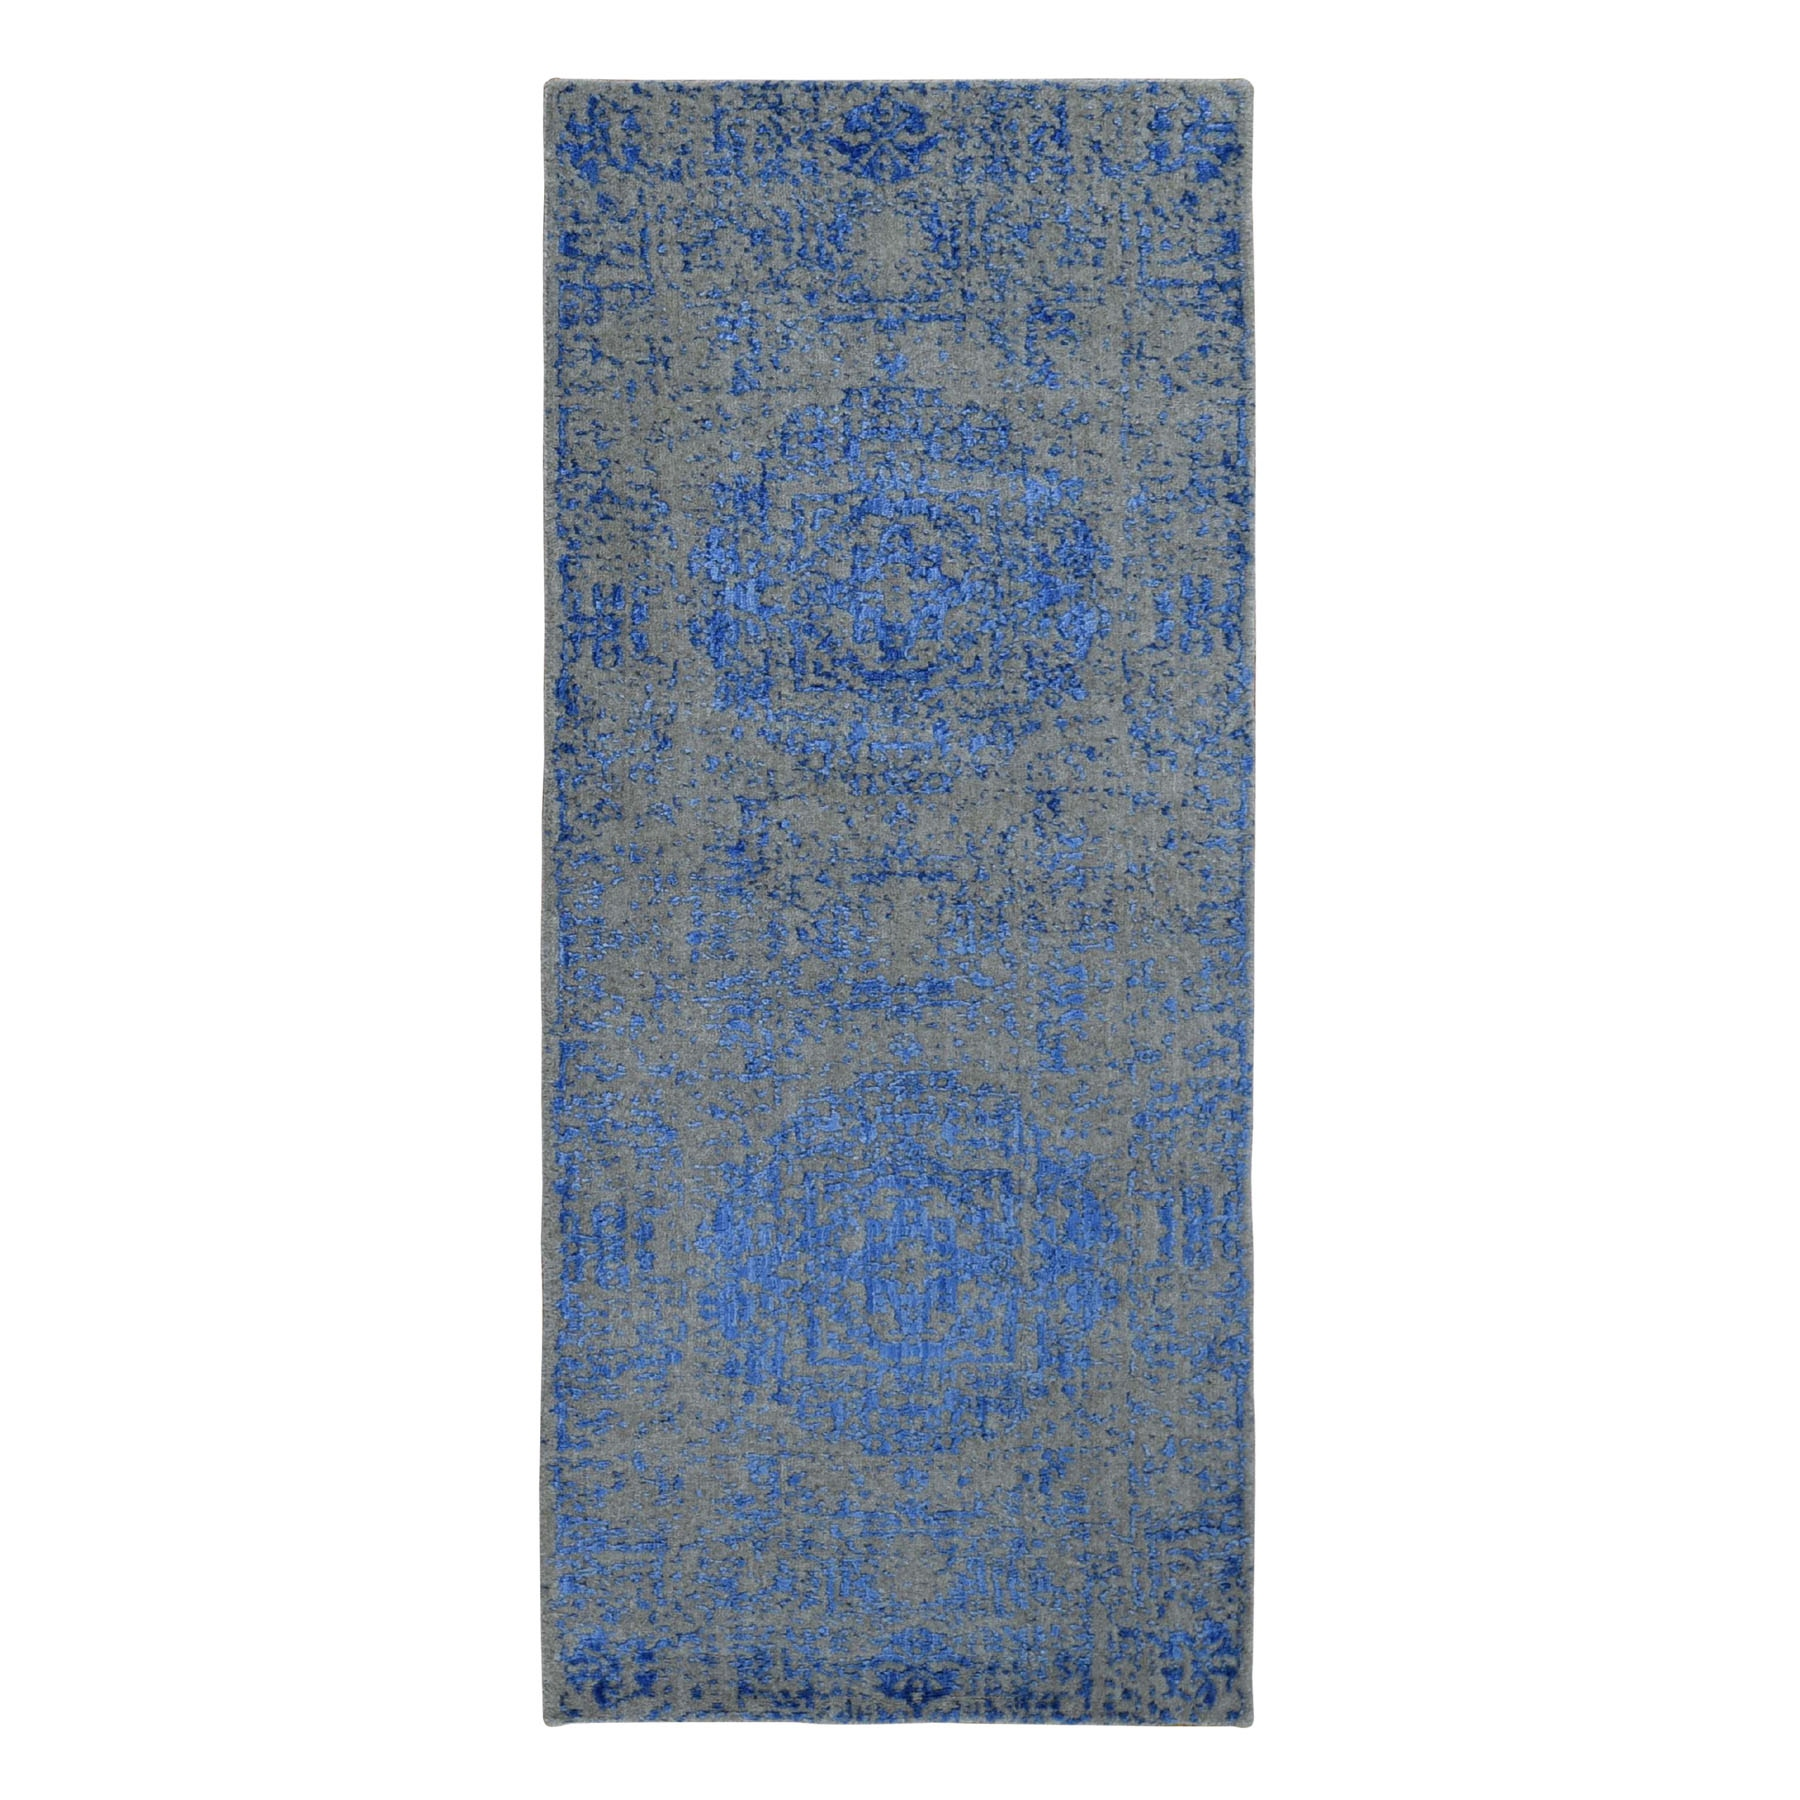 "2'5""X6'1"" Blue Fine Jacquard Mamluk Design Hand Loomed Wool And Art Silk Oriental Rug moad9aa7"